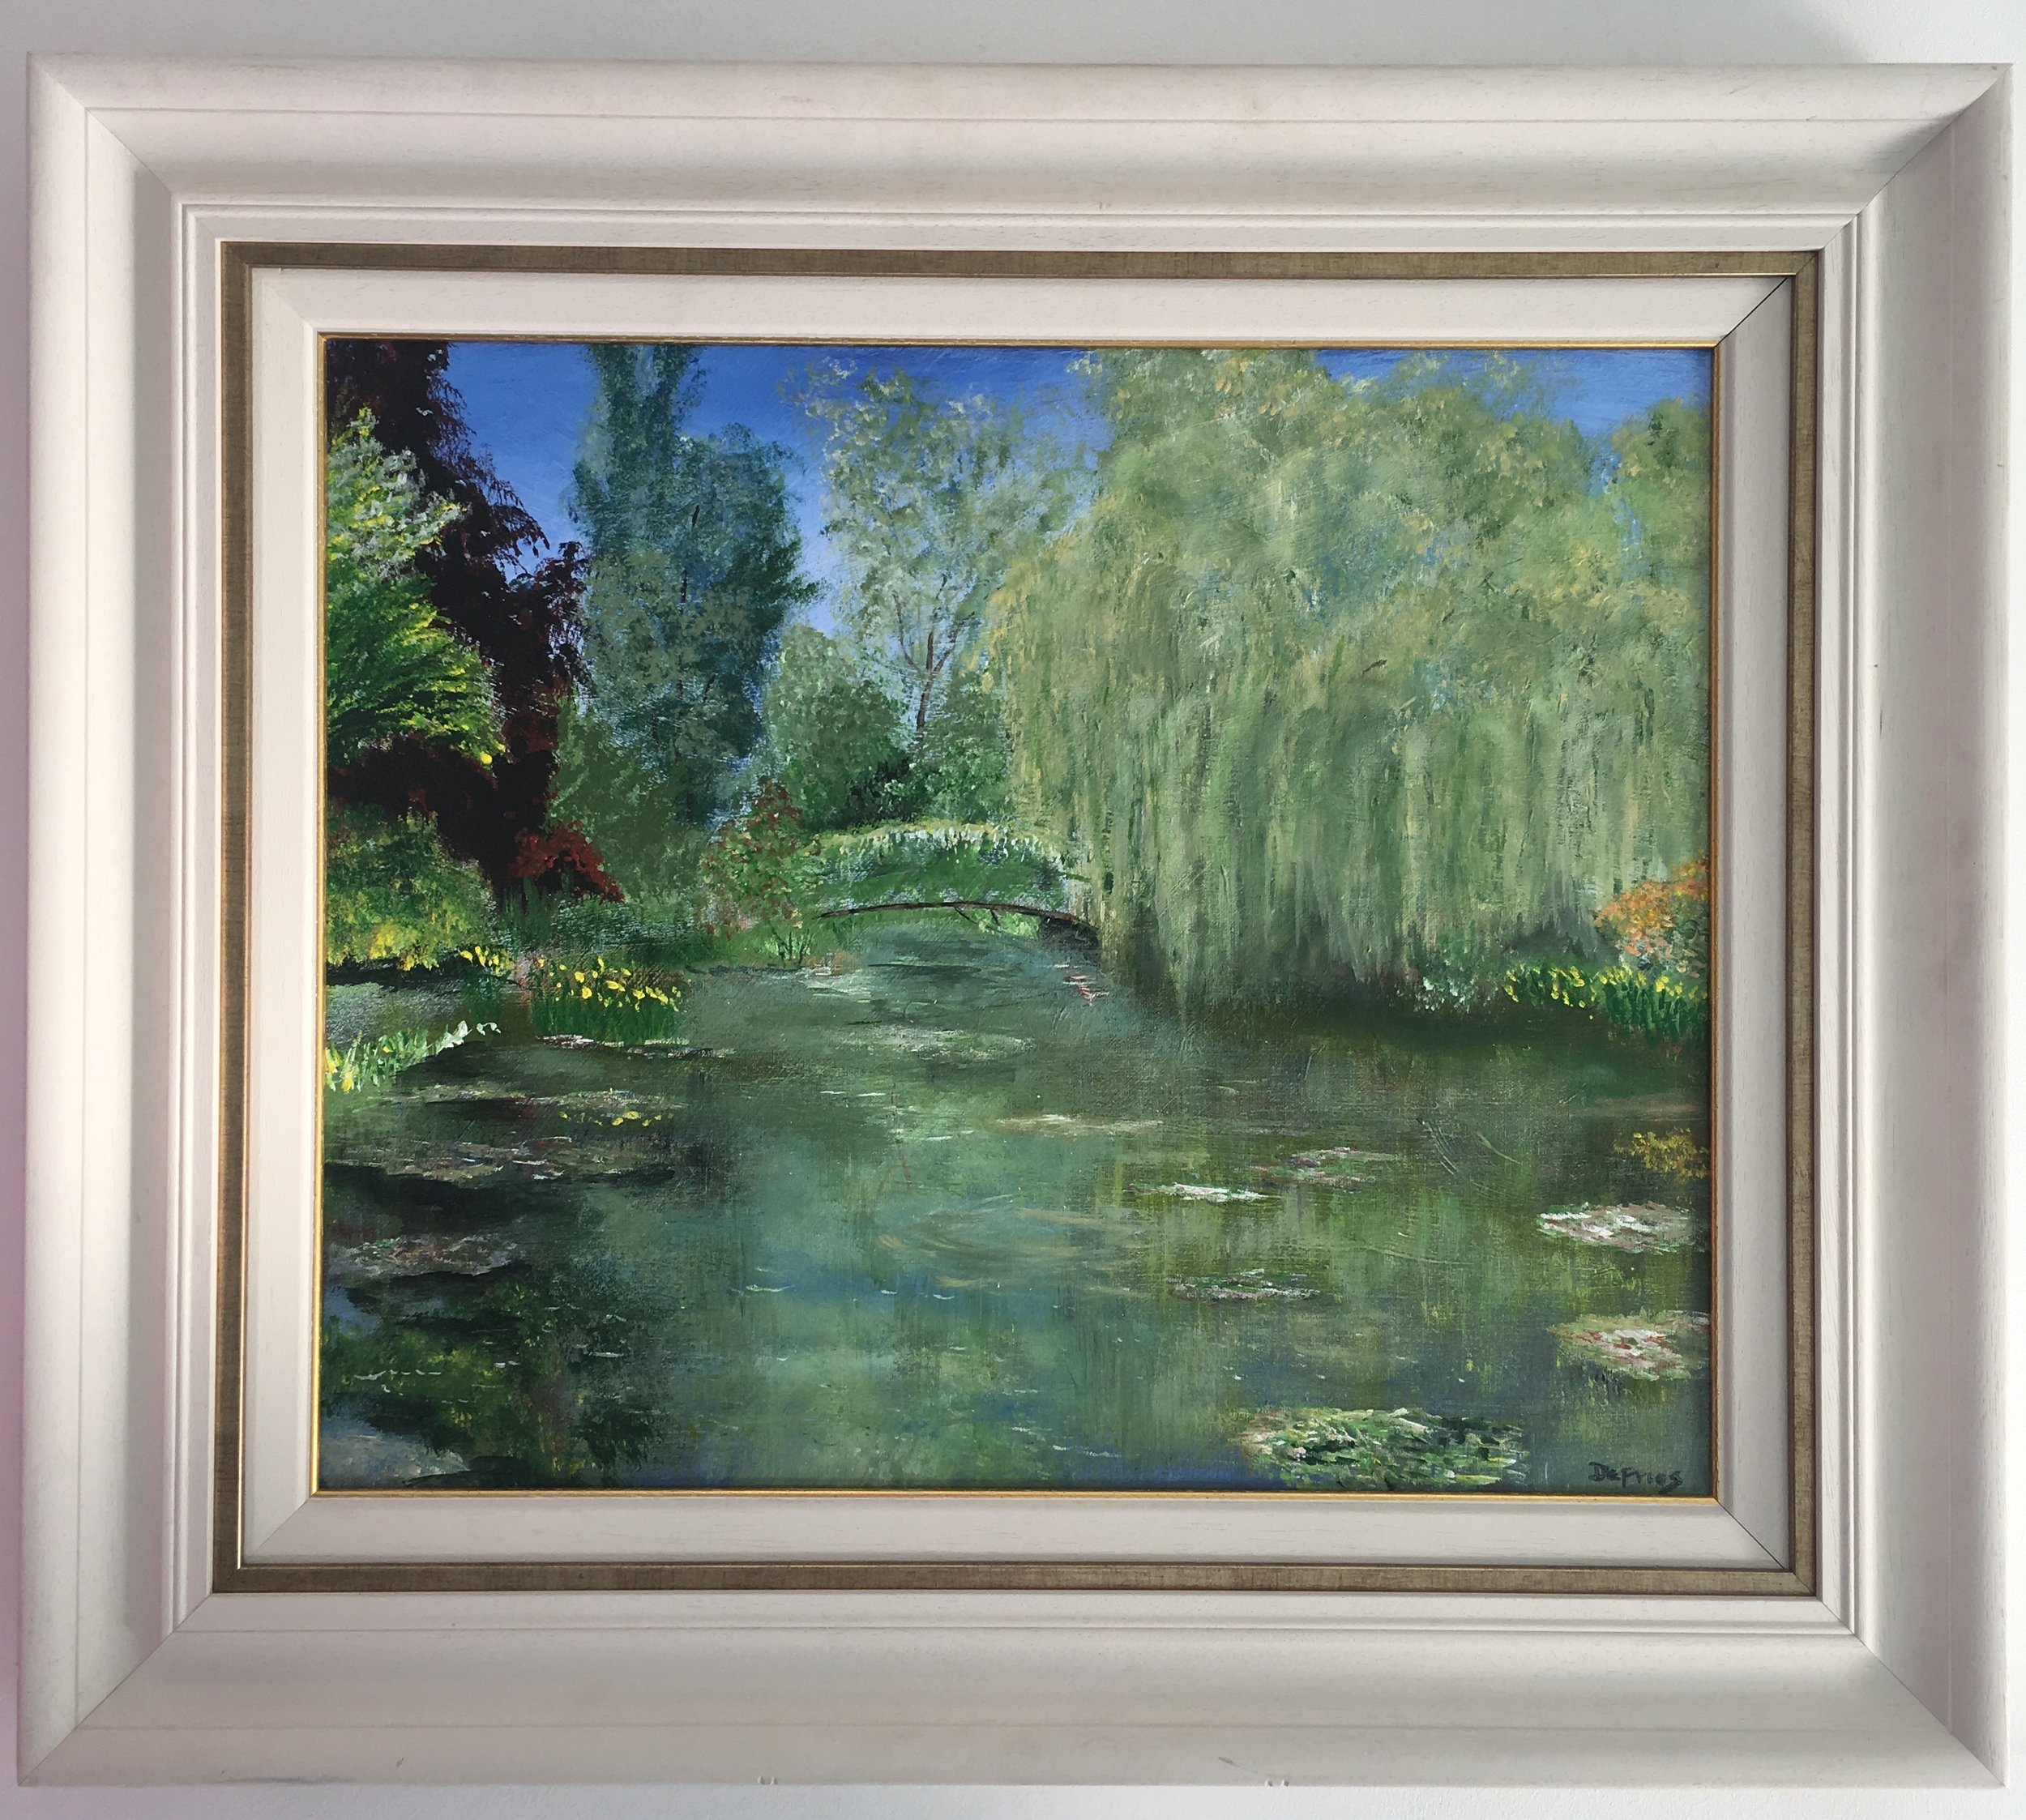 Willow, Giverny, 50 x 60cm, £975